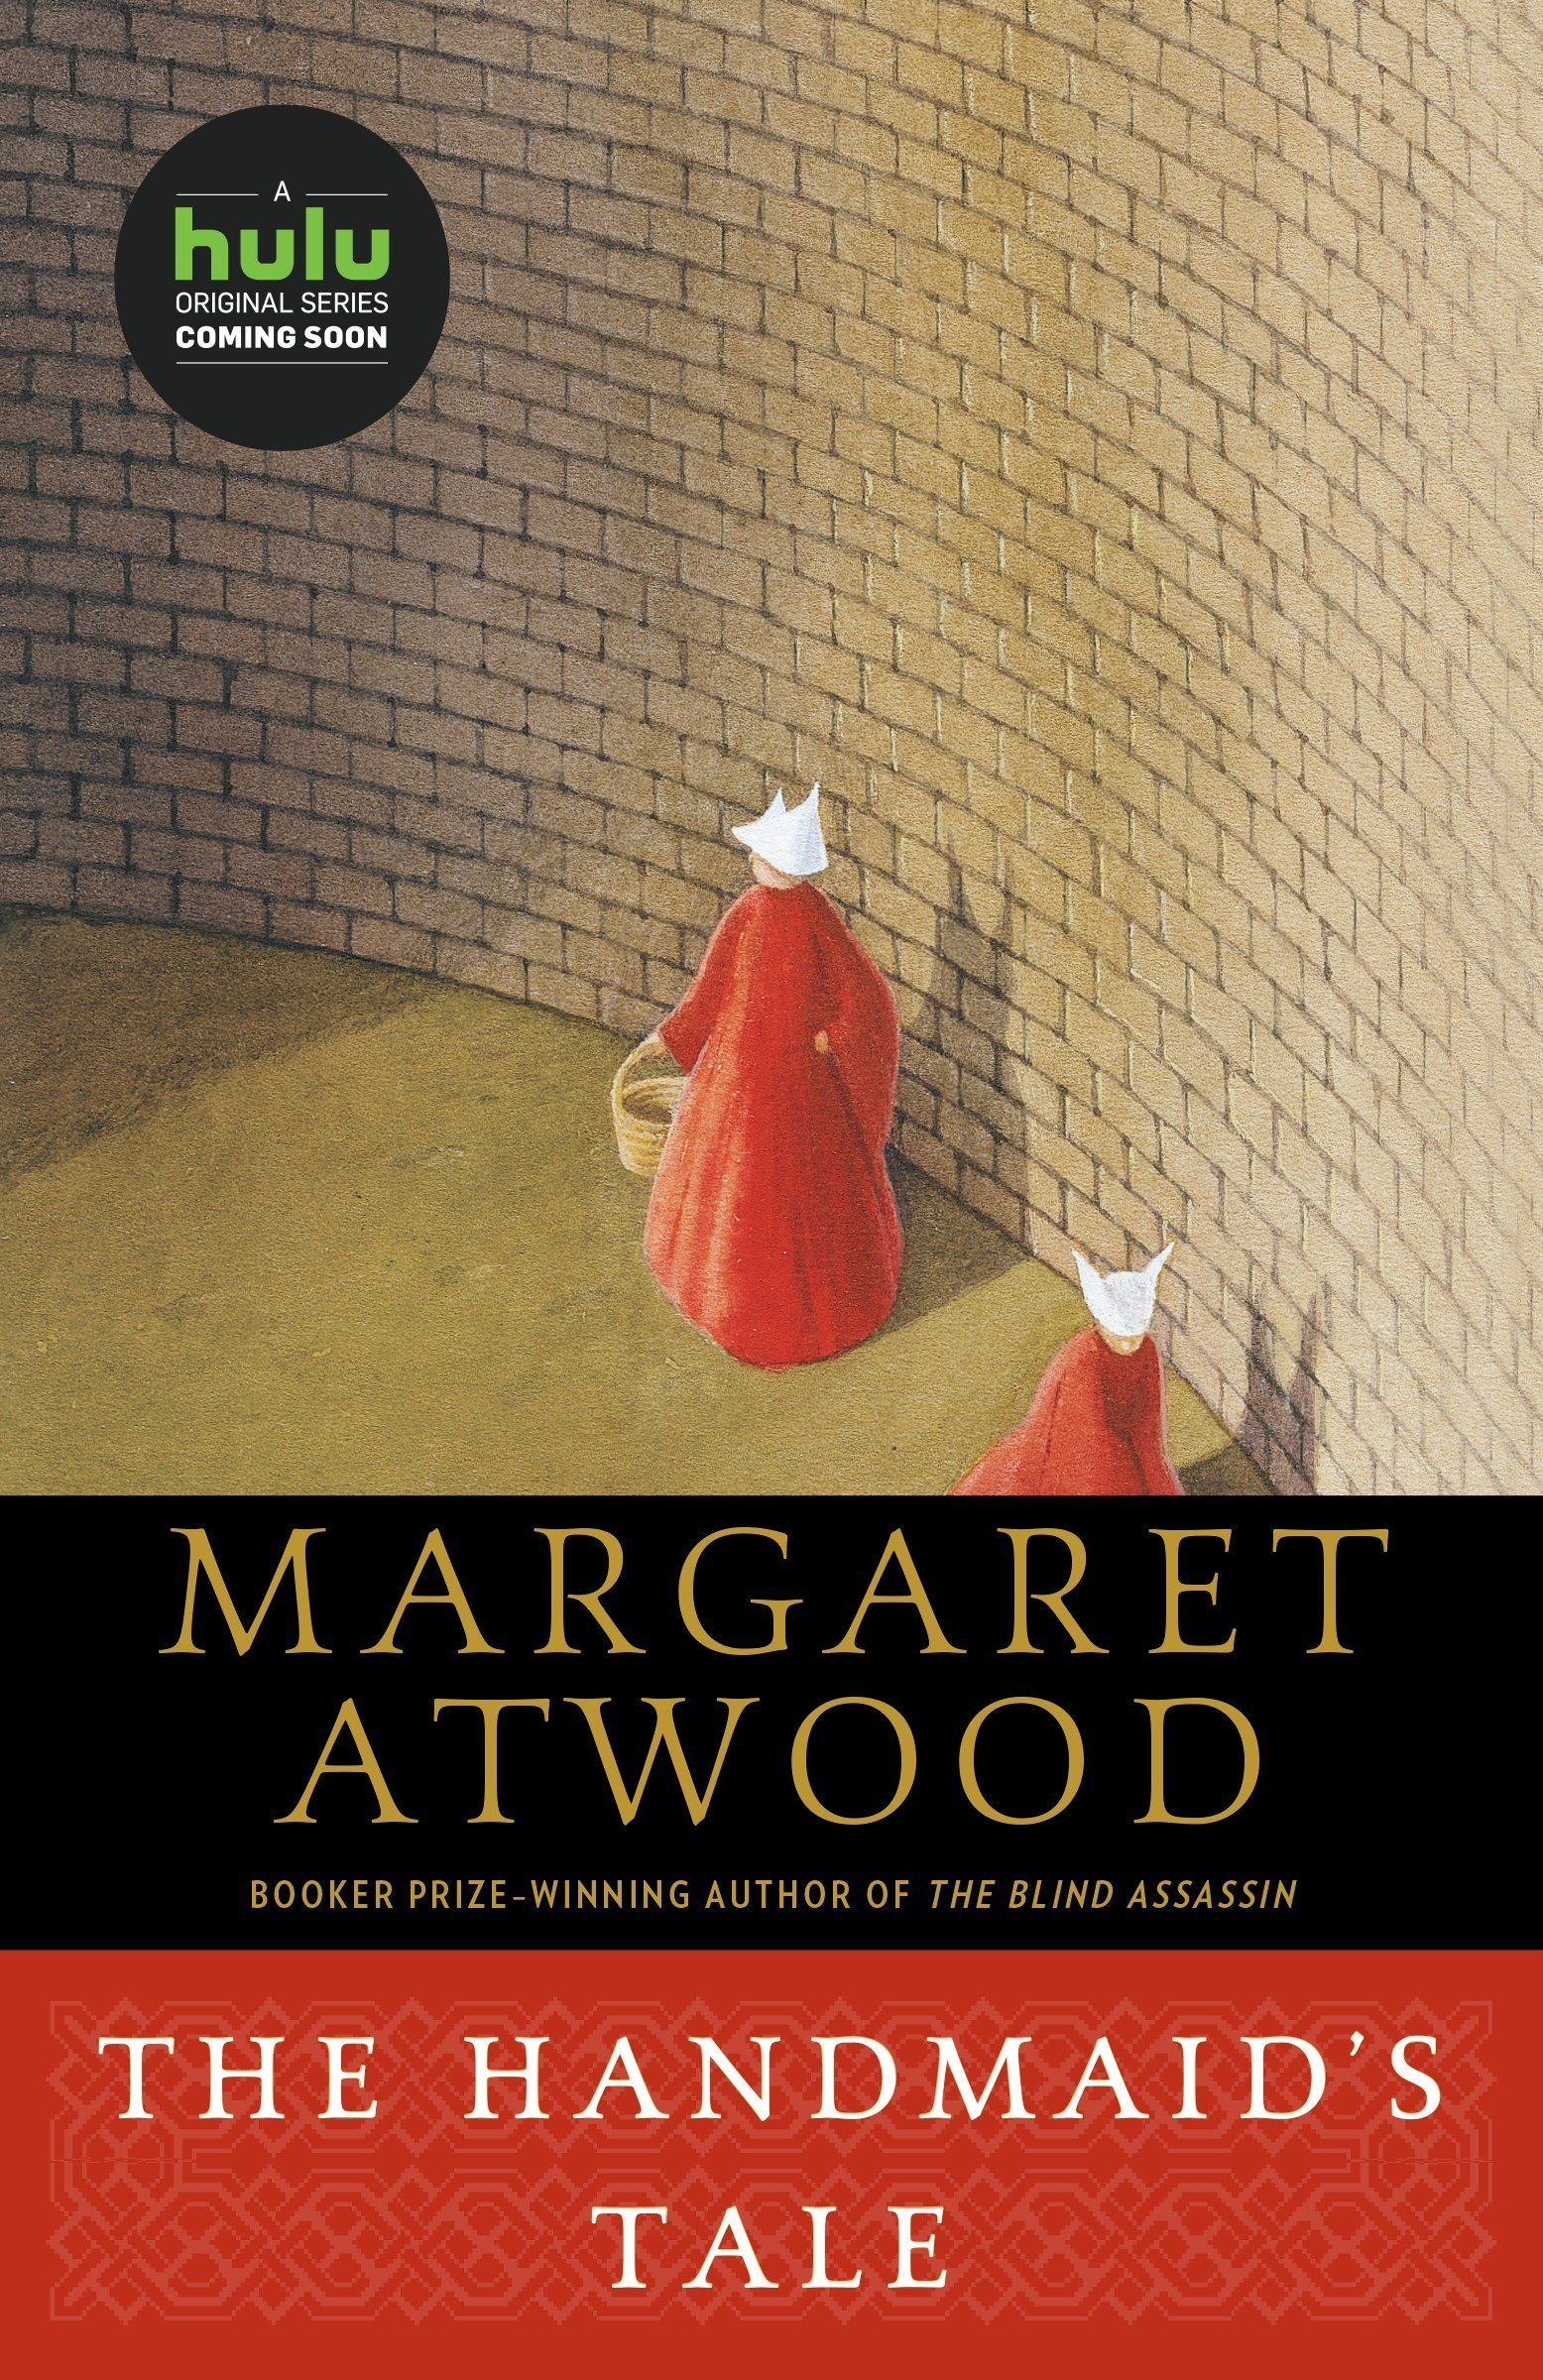 Image result for handmaids tale book cover free